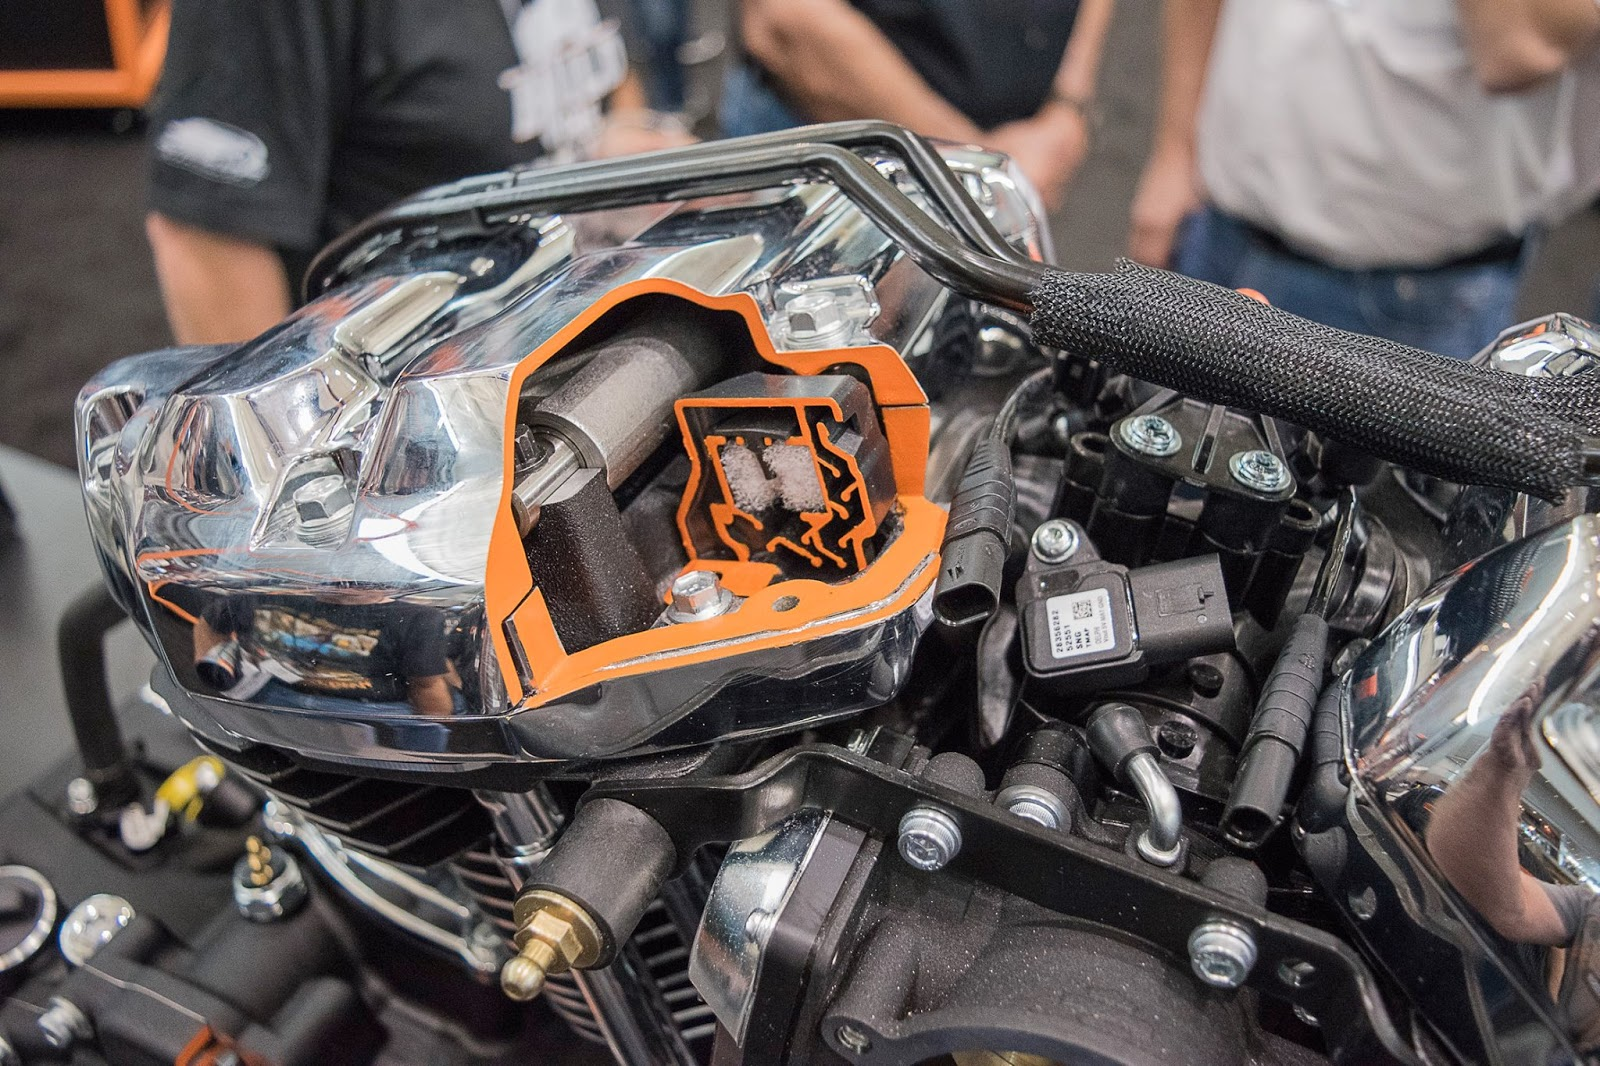 Harley Milwaukee 8 >> The View From Stormy Hill: Harley-Davidson new motor: The